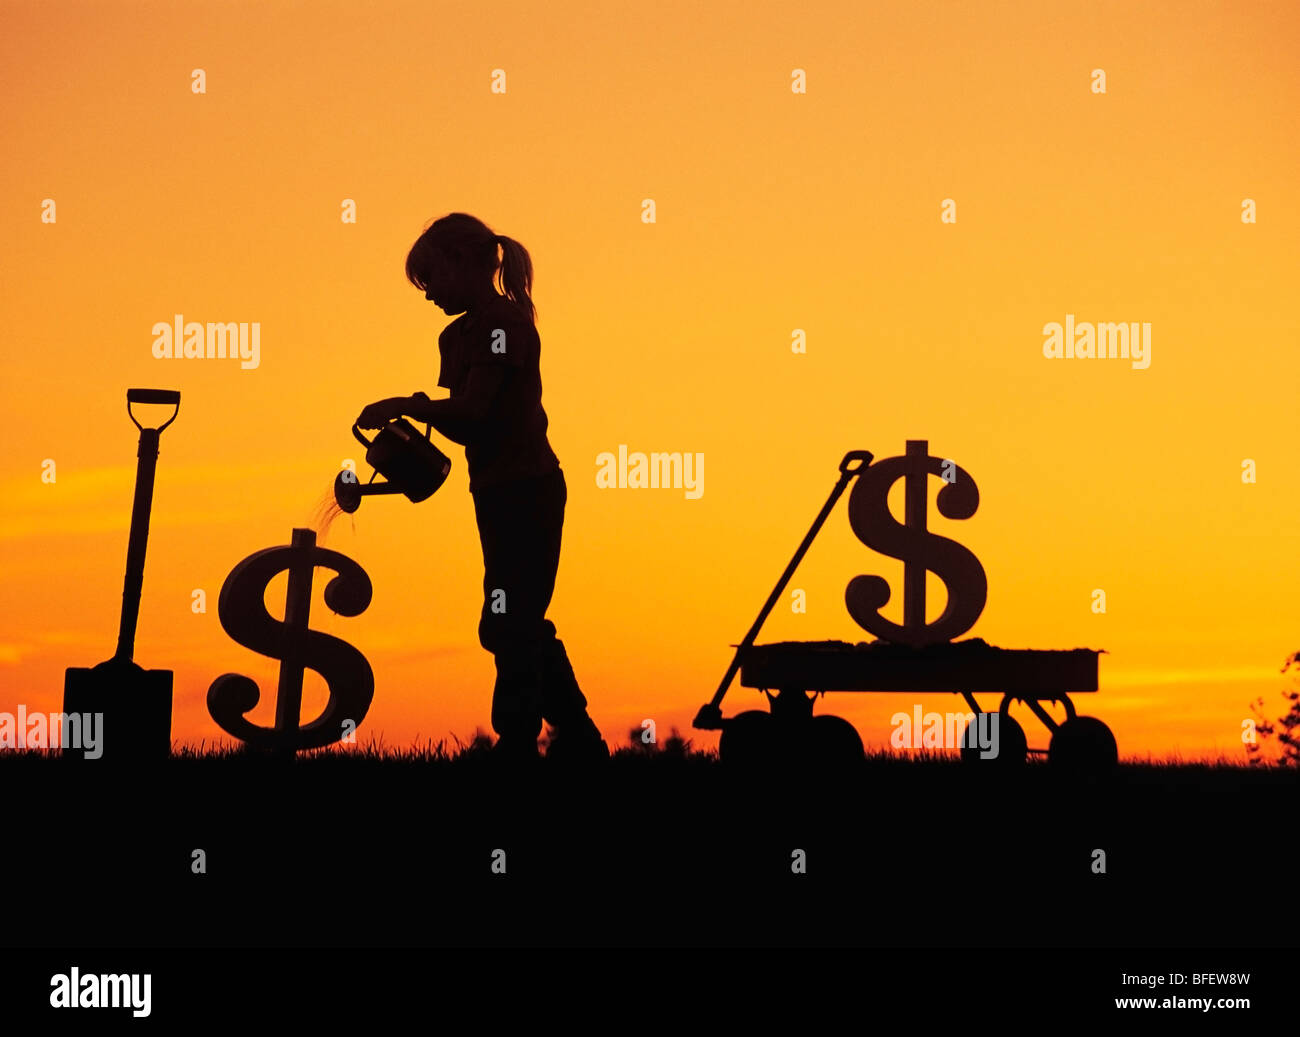 Conceptual of a young girl watering a newly planted dollar sign near Winnipeg, Manitoba, Canada - Stock Image